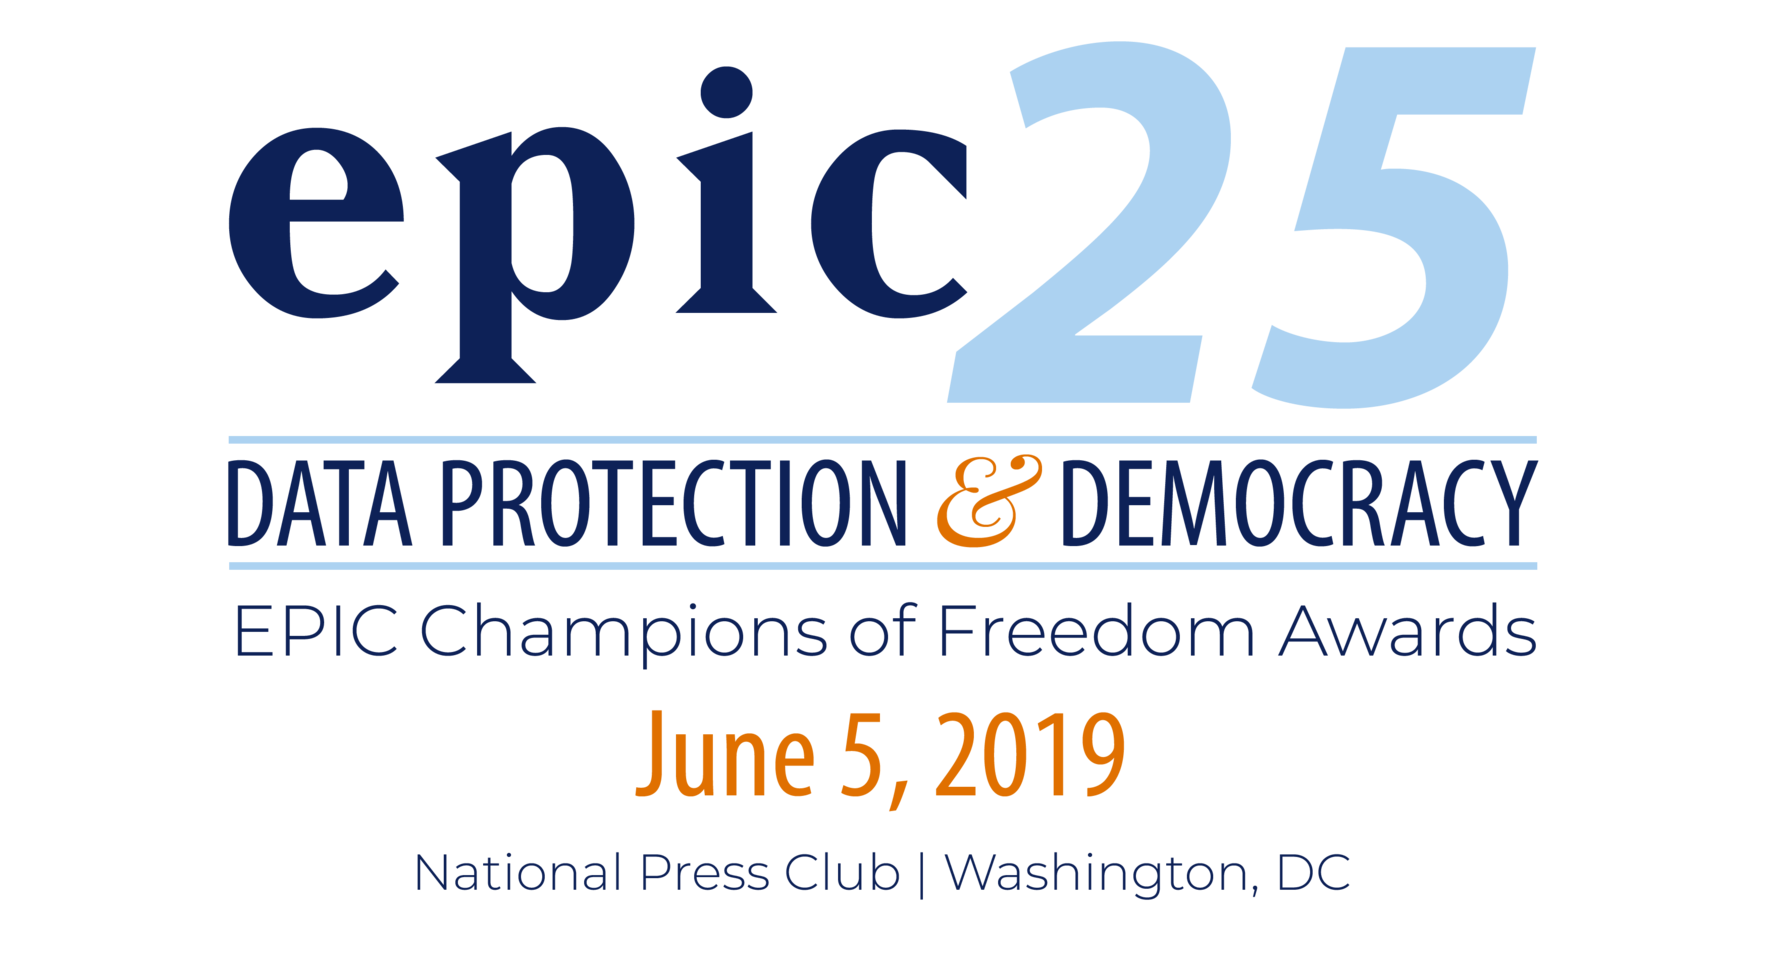 EPIC's Champions of Freedom Awards Dinner 2019 image